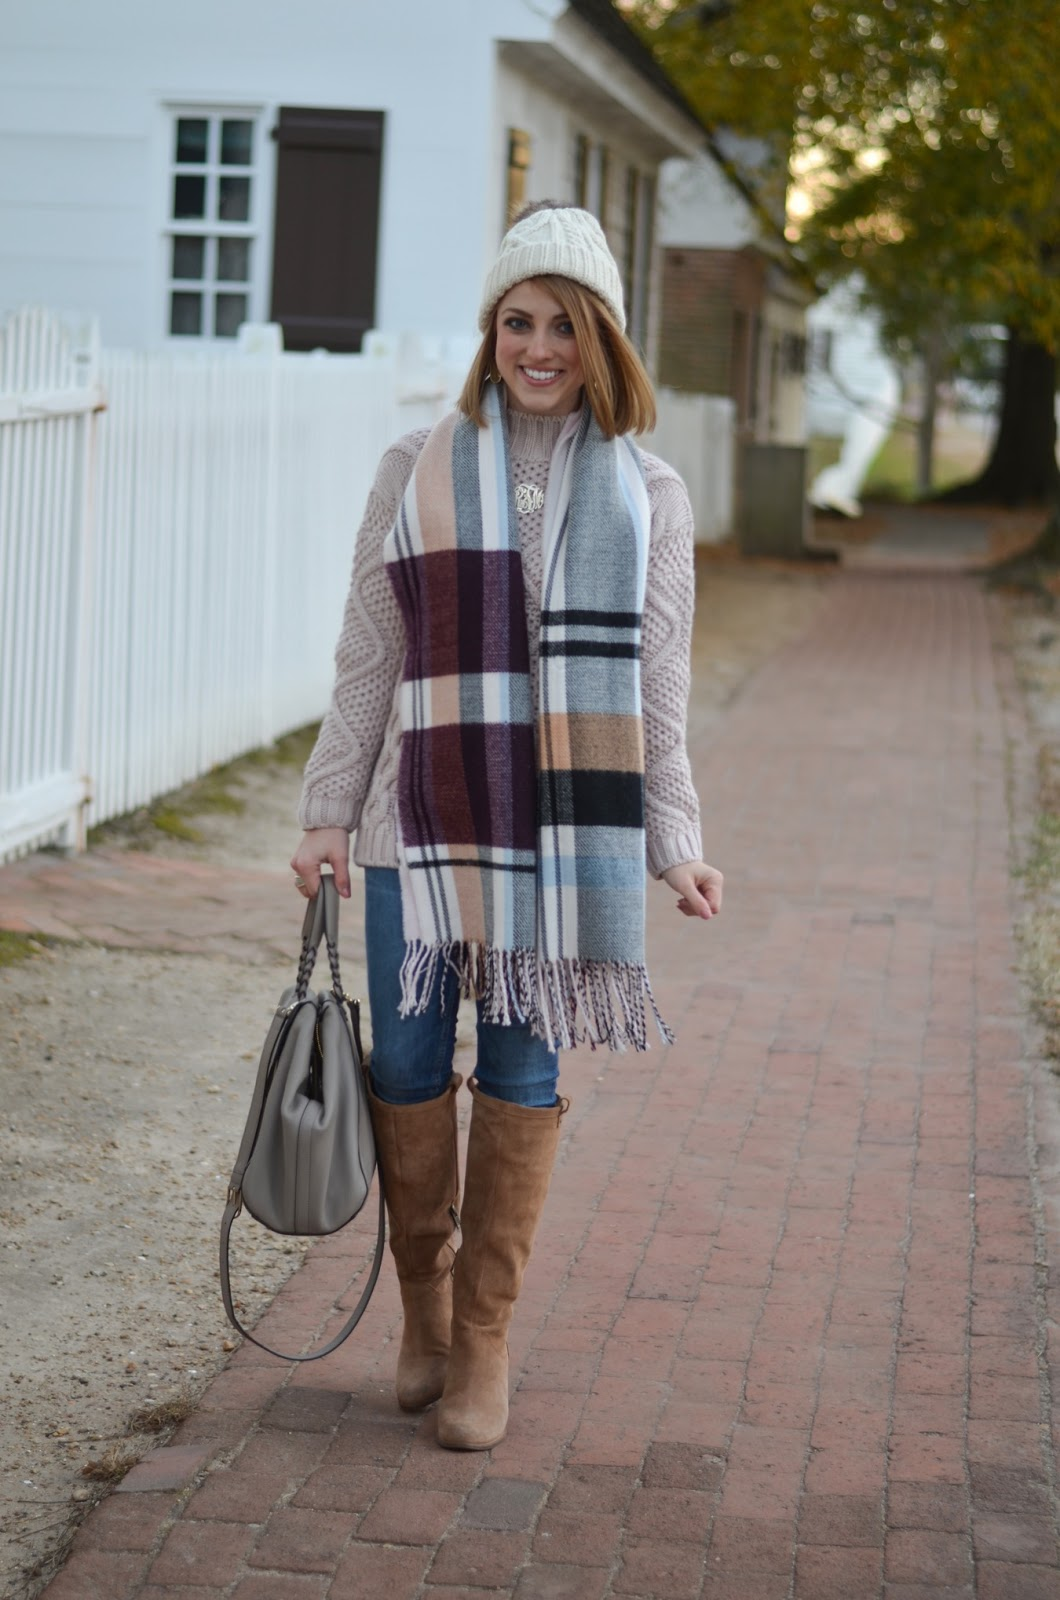 Cozy Sweater - Something Delightful Blog